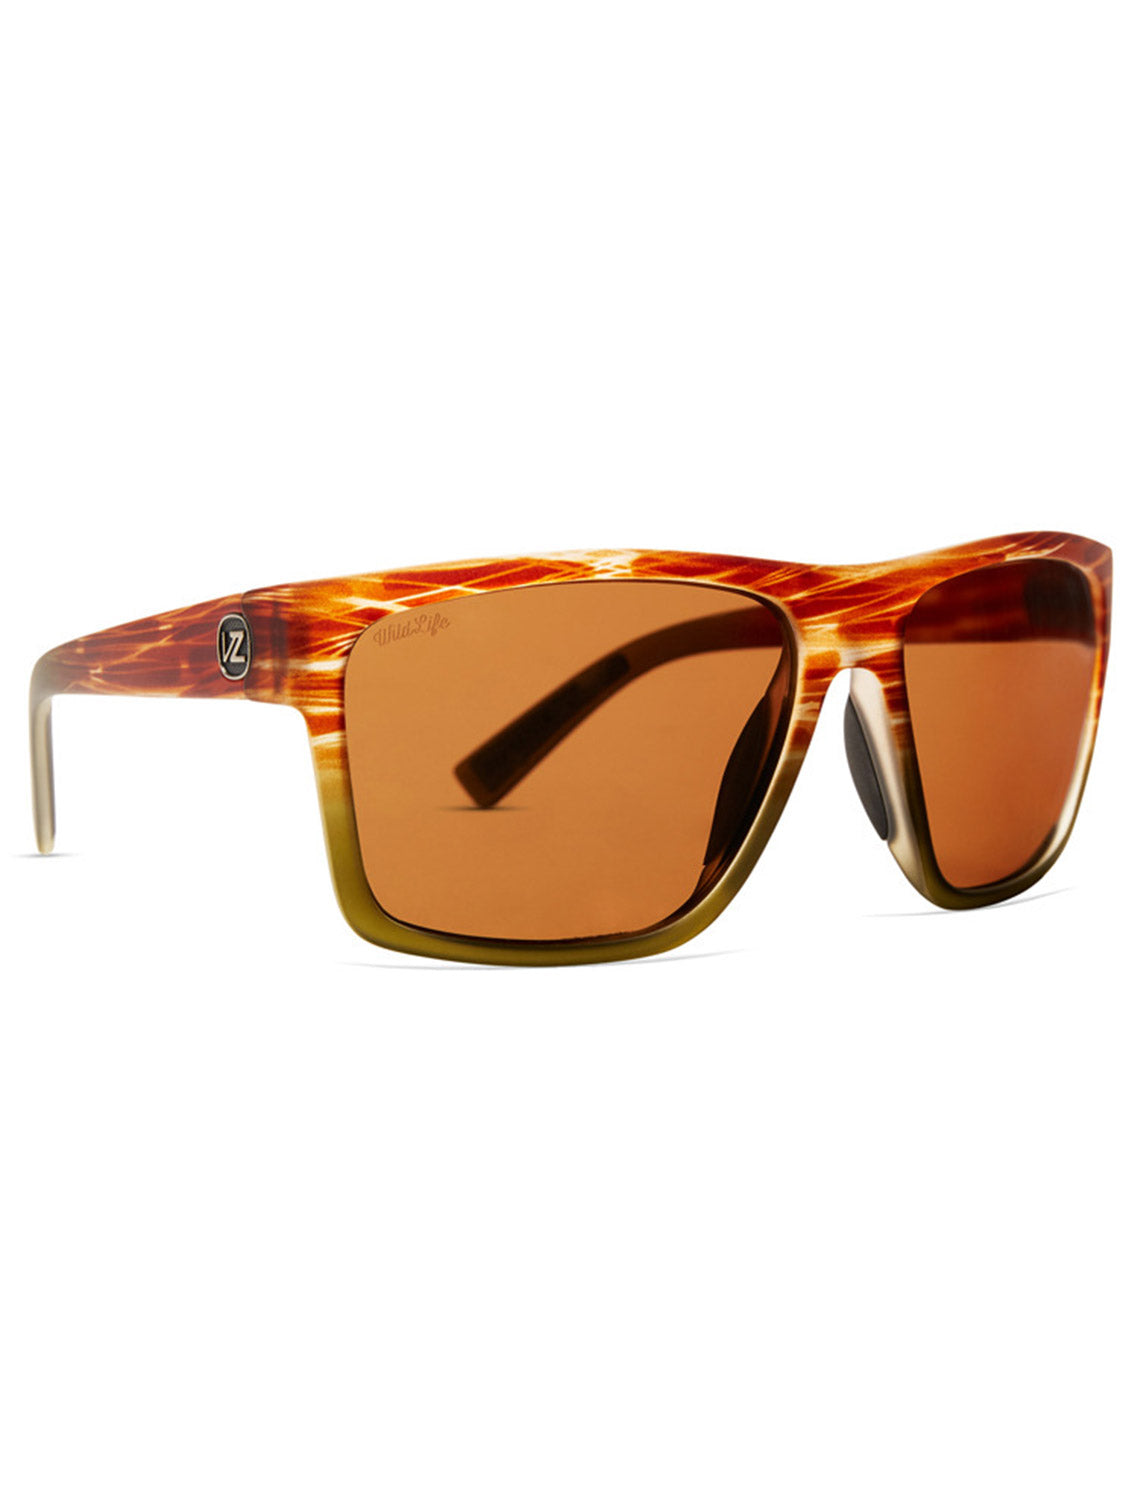 Dipstick Polarized Sunglasses